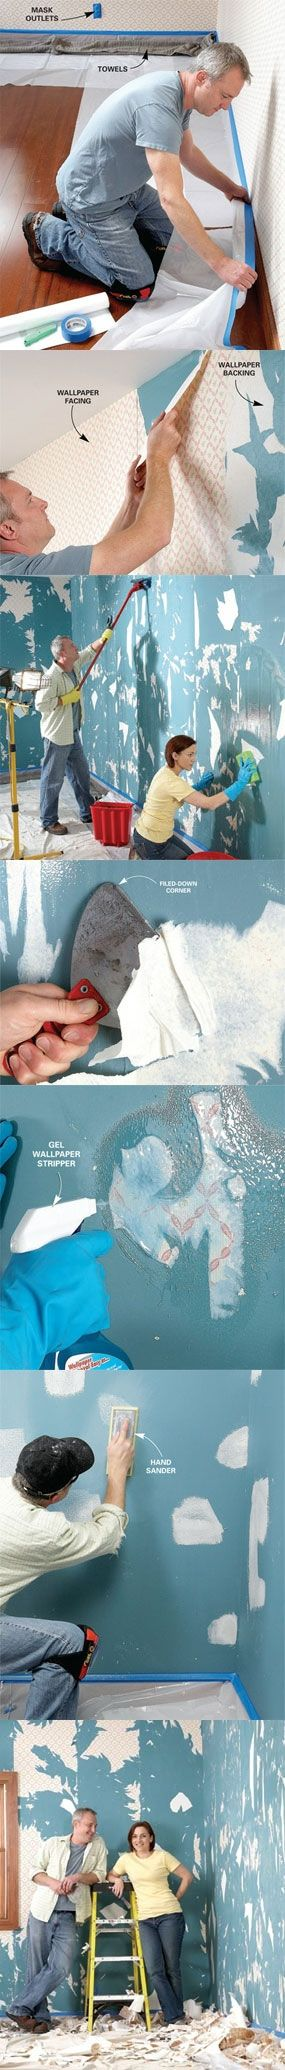 Learn the best way to remove wallpaper at http://www.familyhandyman.com/DIY-Projects/Home-Decorating/Wallpaper/the-best-way-to-remove-wallpaper/View-All